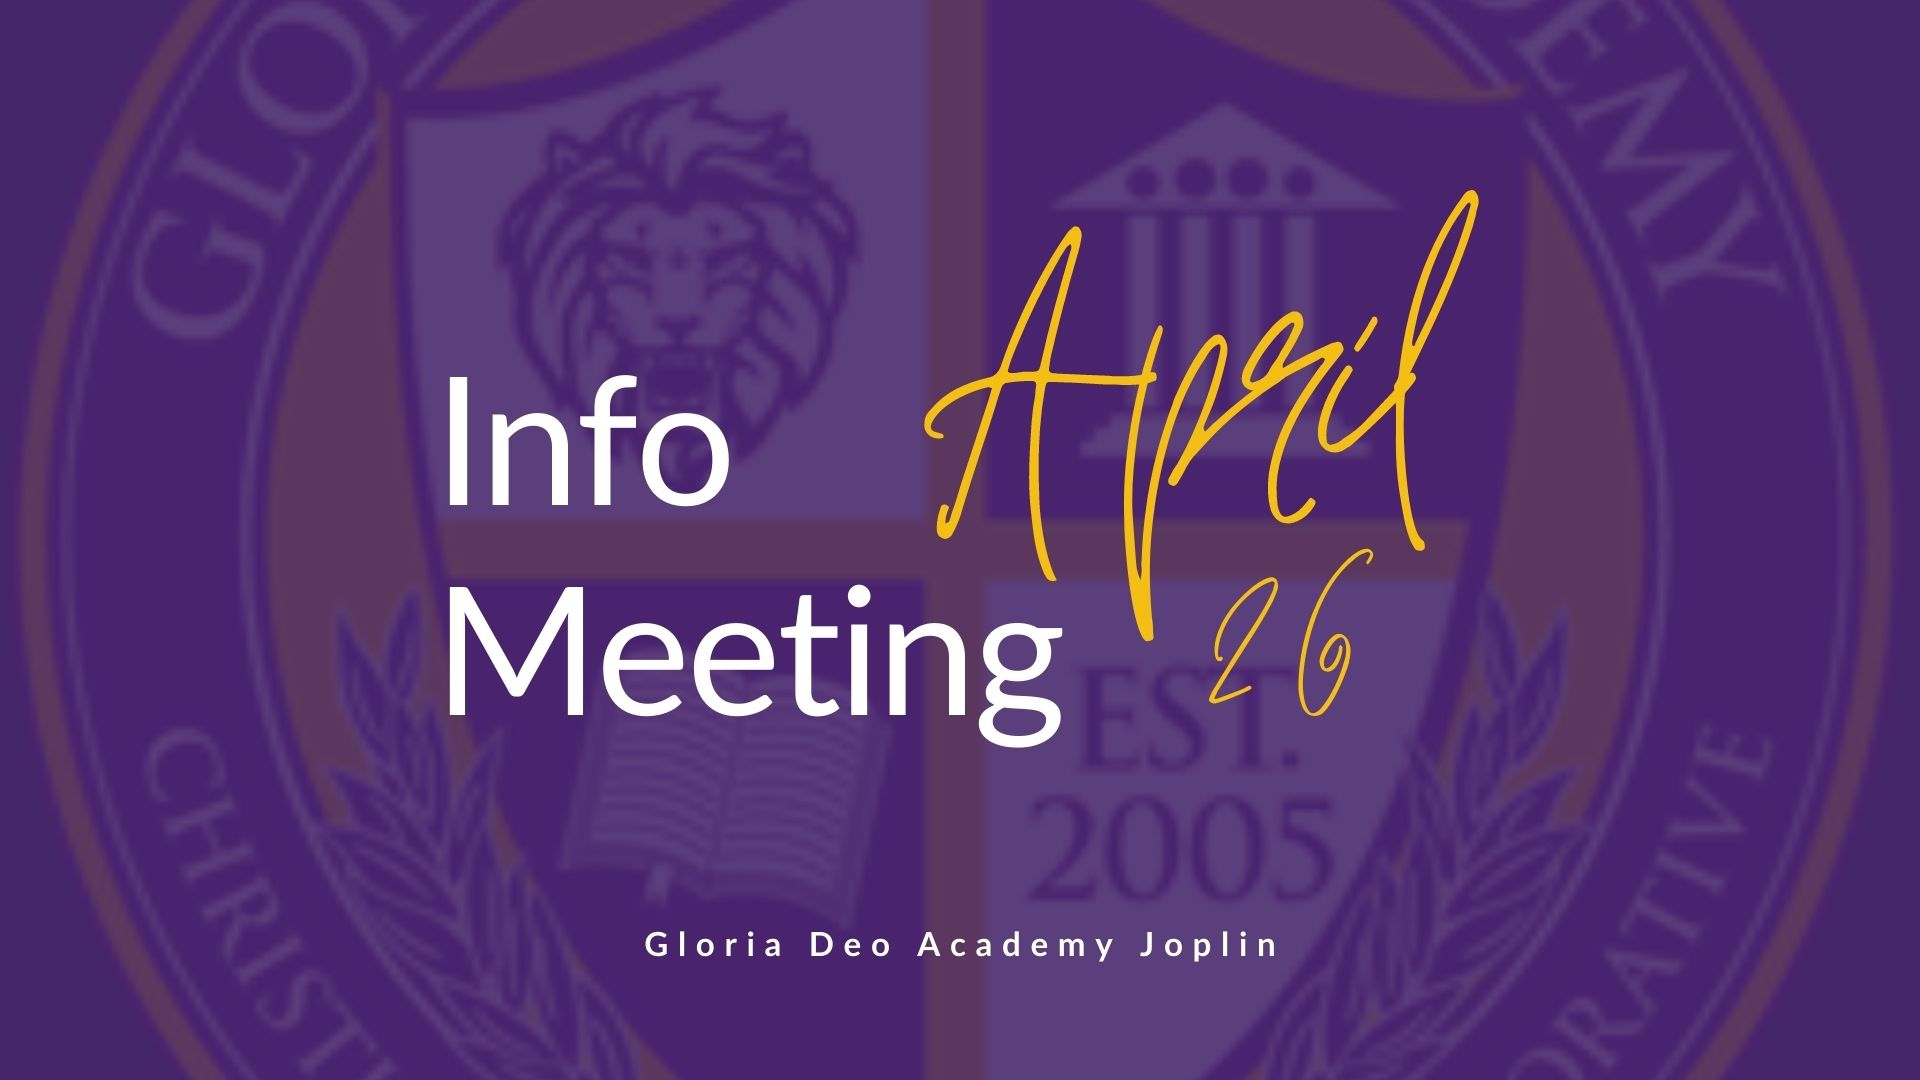 GDA Joplin Info Meeting